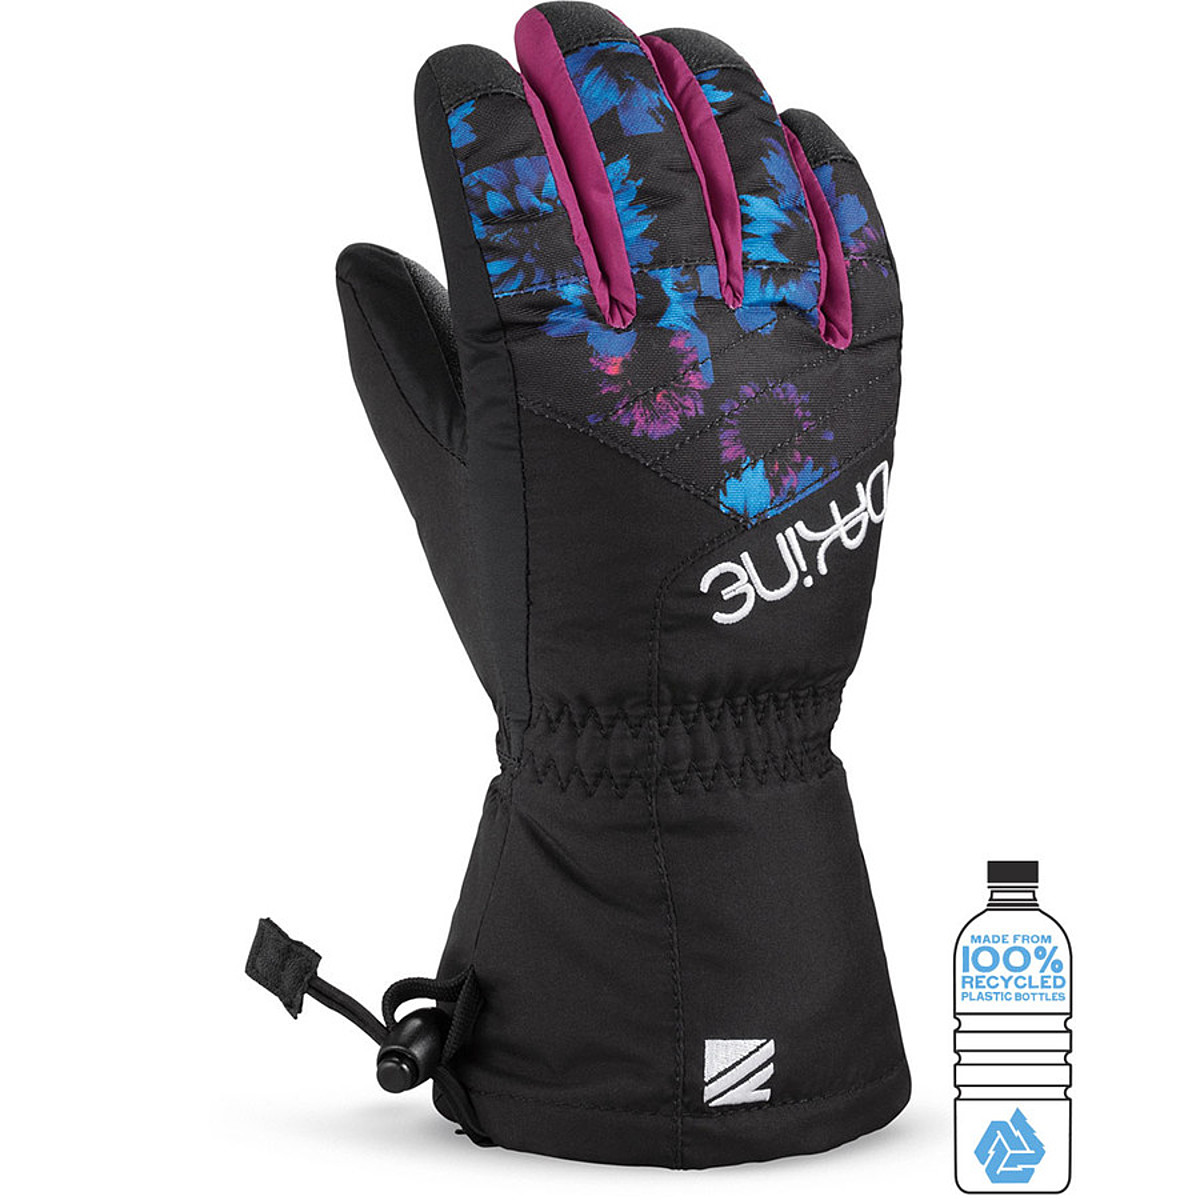 DaKine Tracker Jr Glove